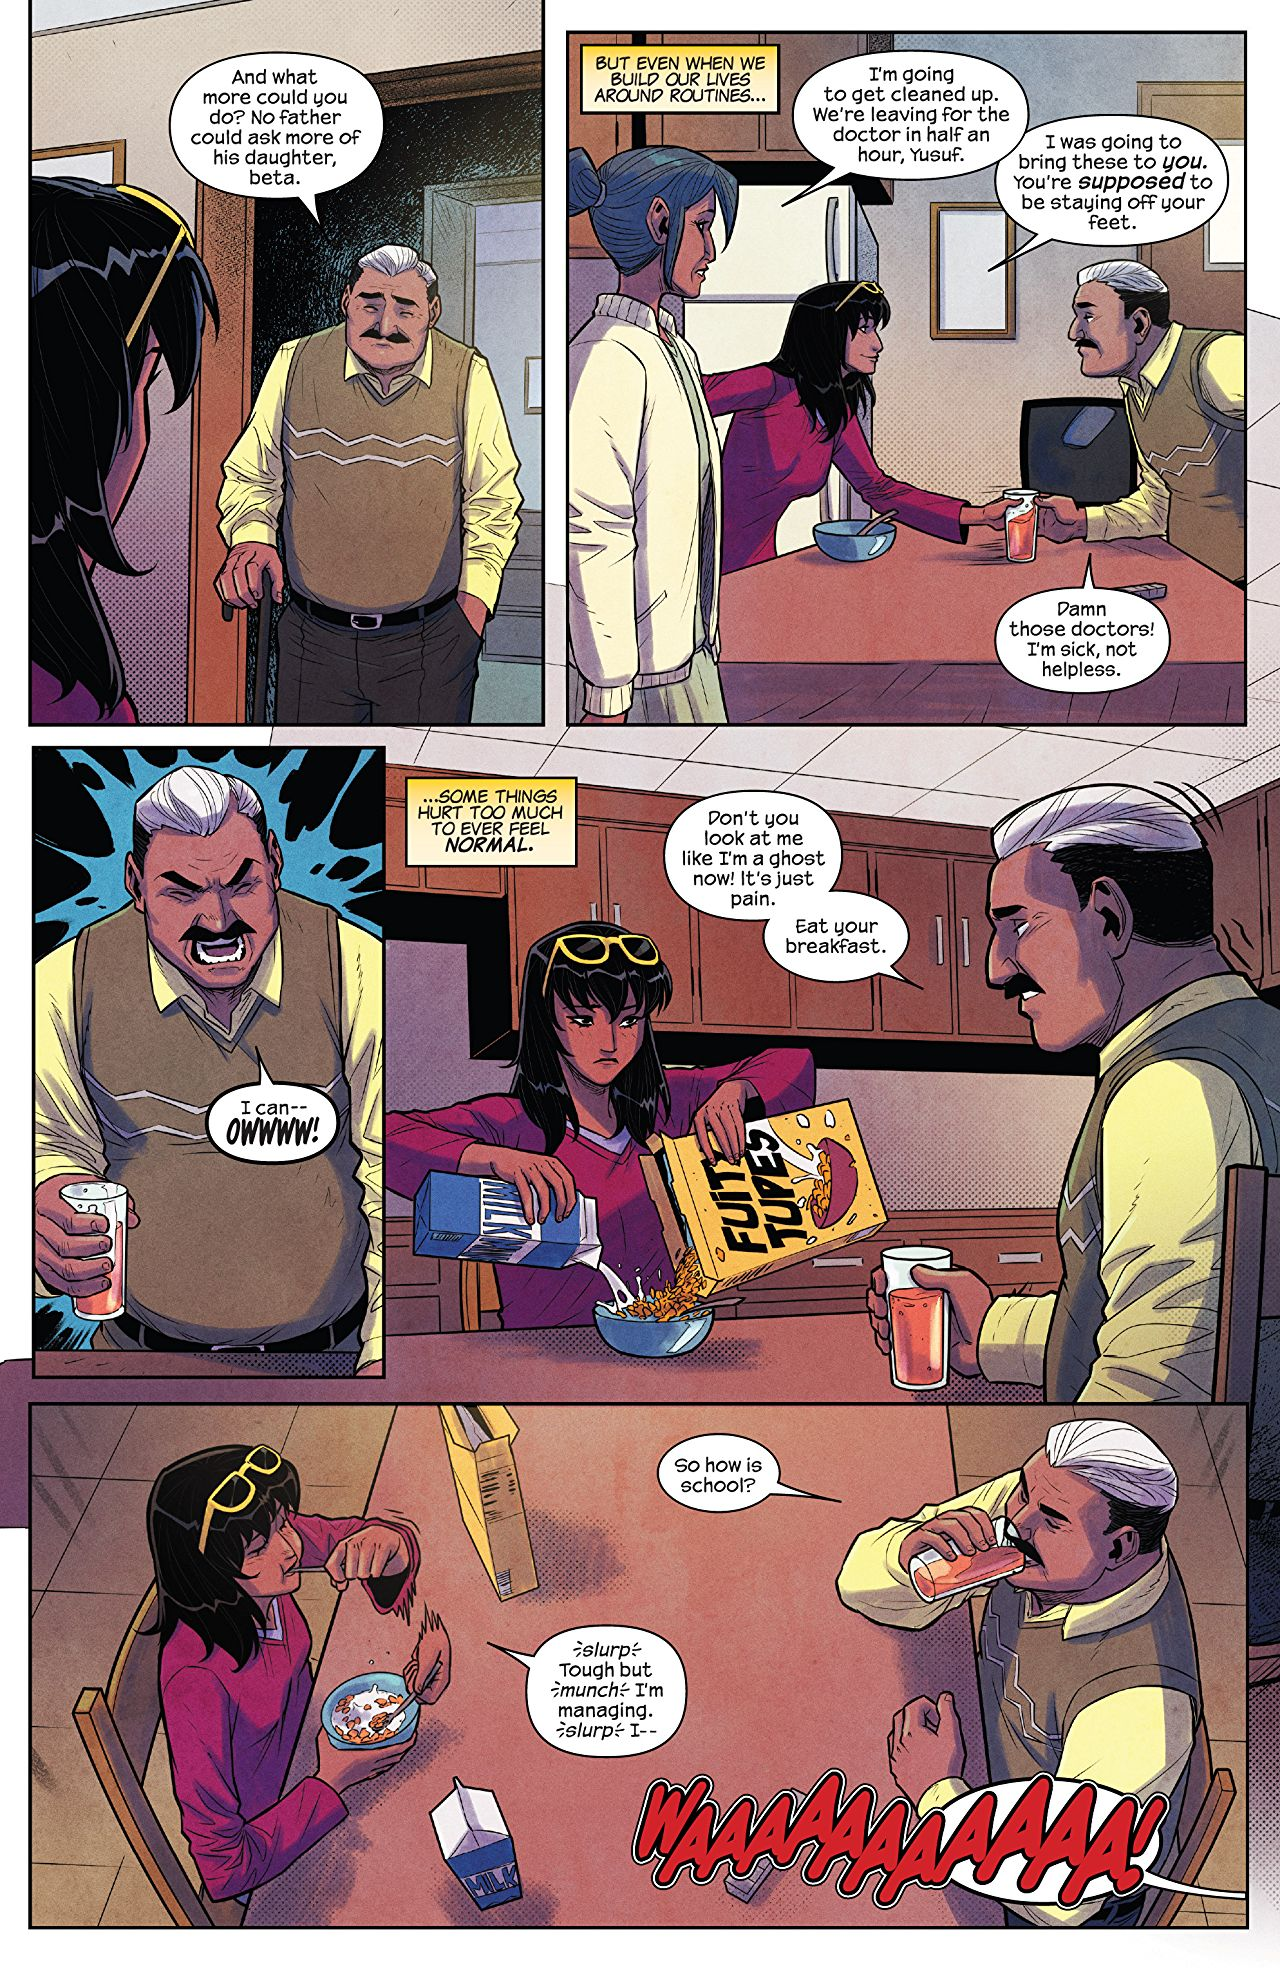 The Magnificent Ms Marvel #7: Page 3, Kamala eats breakfast with her father.